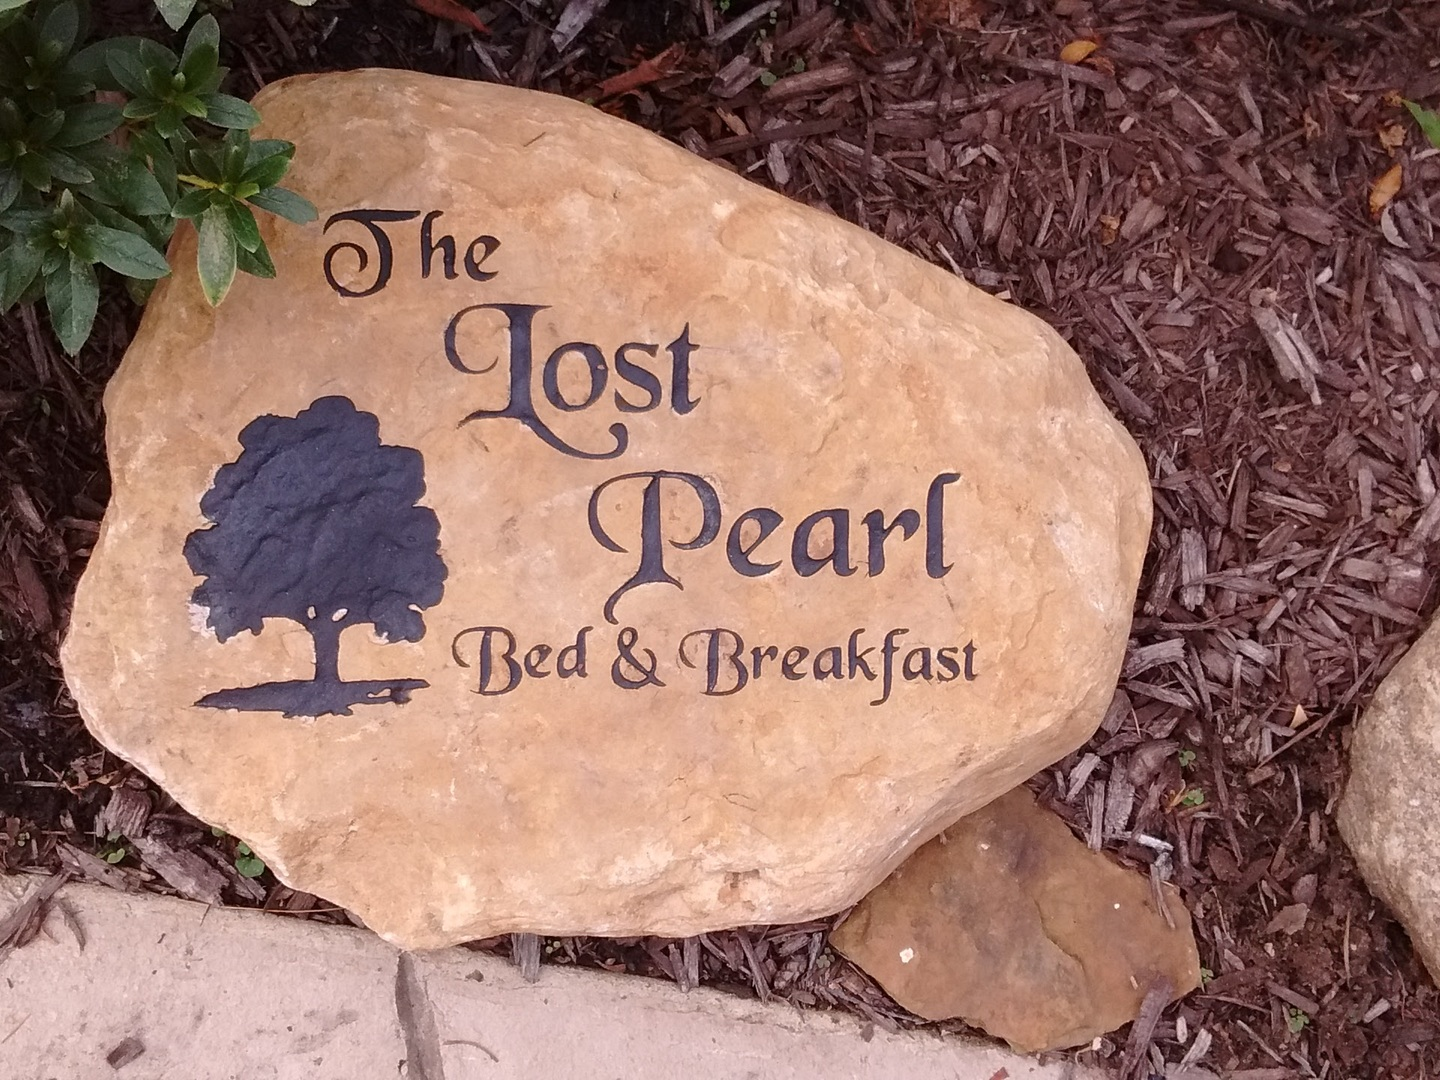 A sign on a rock at The Lost Pearl Bed and Breakfast.